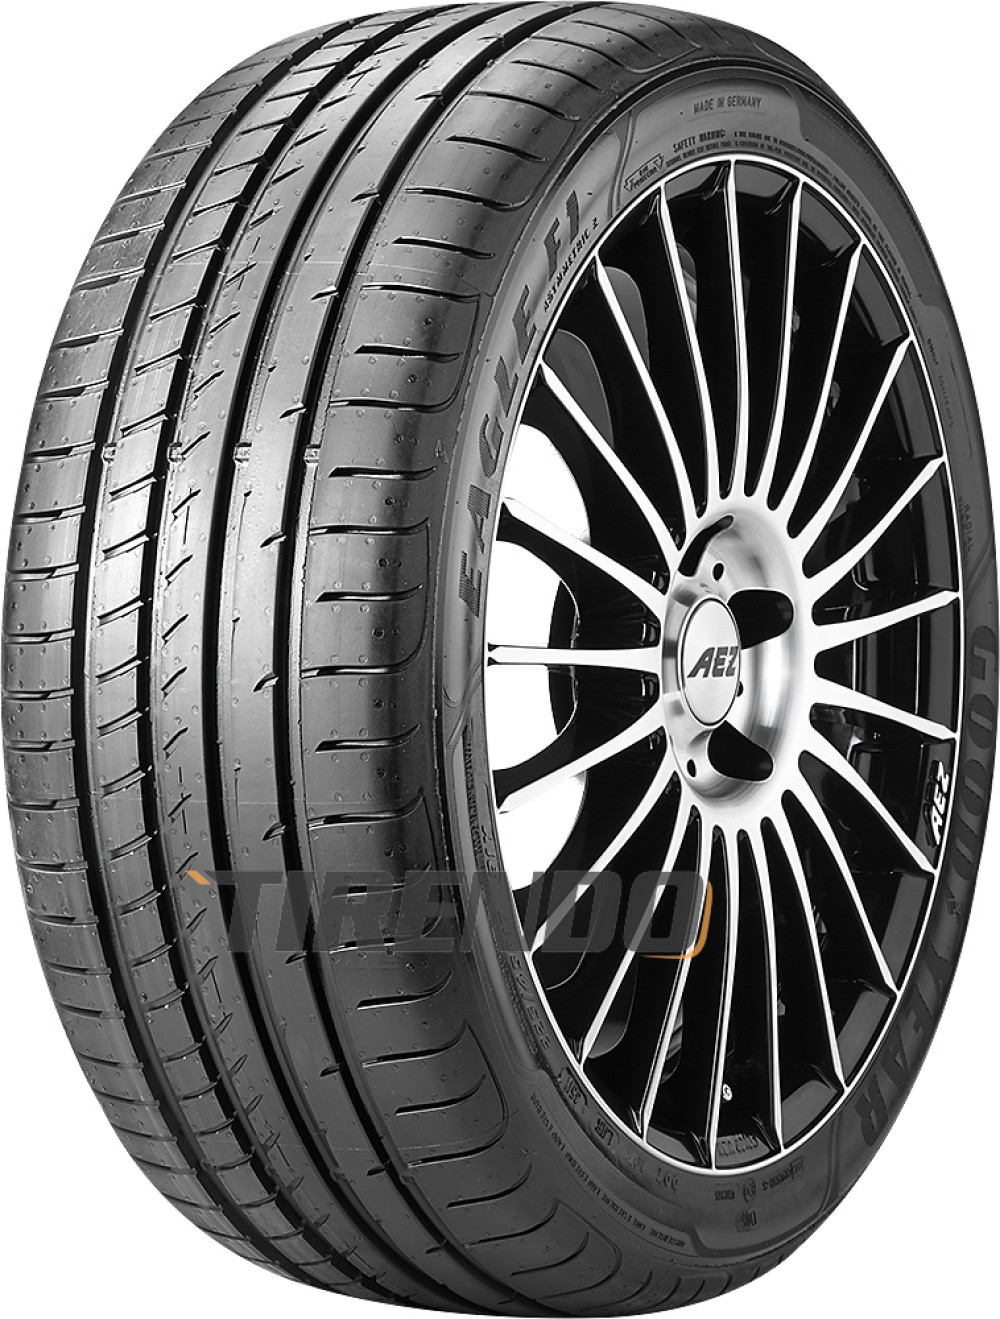 Goodyear Eagle F1 Asymmetric 2 ( 265/50 R19 110Y XL N1, SUV ) von Goodyear